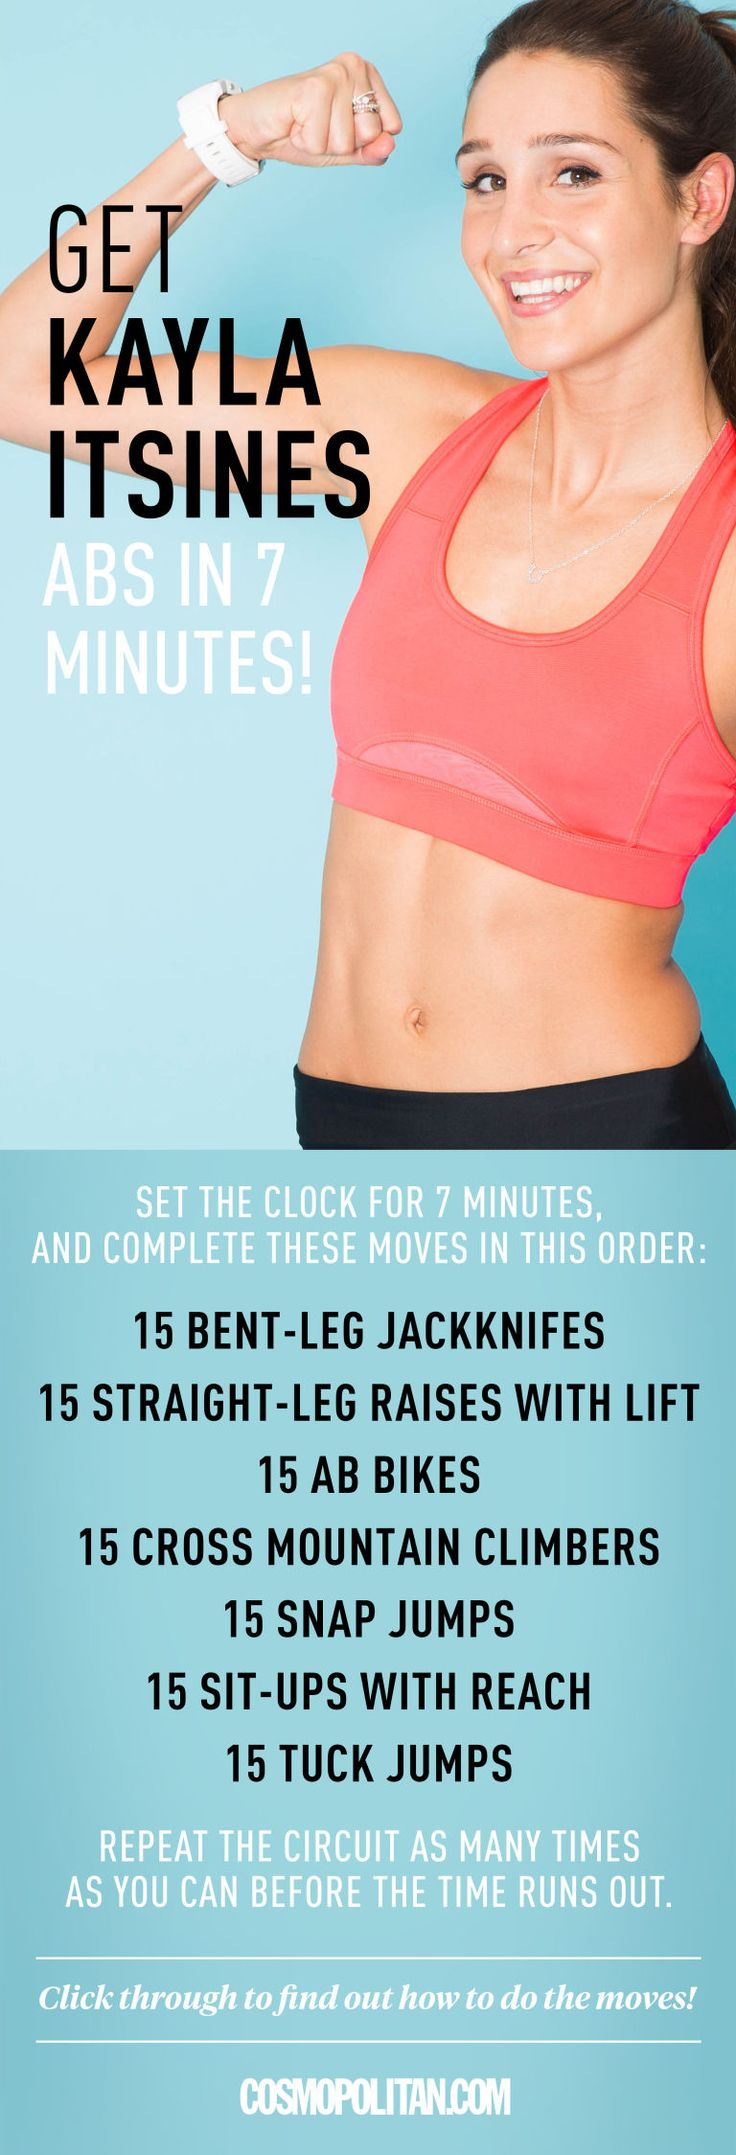 ABS WORKOUT: If you want strong, sexy abs, you don't have to spend all day on them. Just ask Australian fitness trainer Kayla Itsines, who is known for her Bikini Body Workout Guides, cult following on Instagram, and rock-solid core. To make your torso look like a washboard, Kayla recommends the seven-minute workout found here. Click through for the free abs and core workout that you can do at home or at the gym.